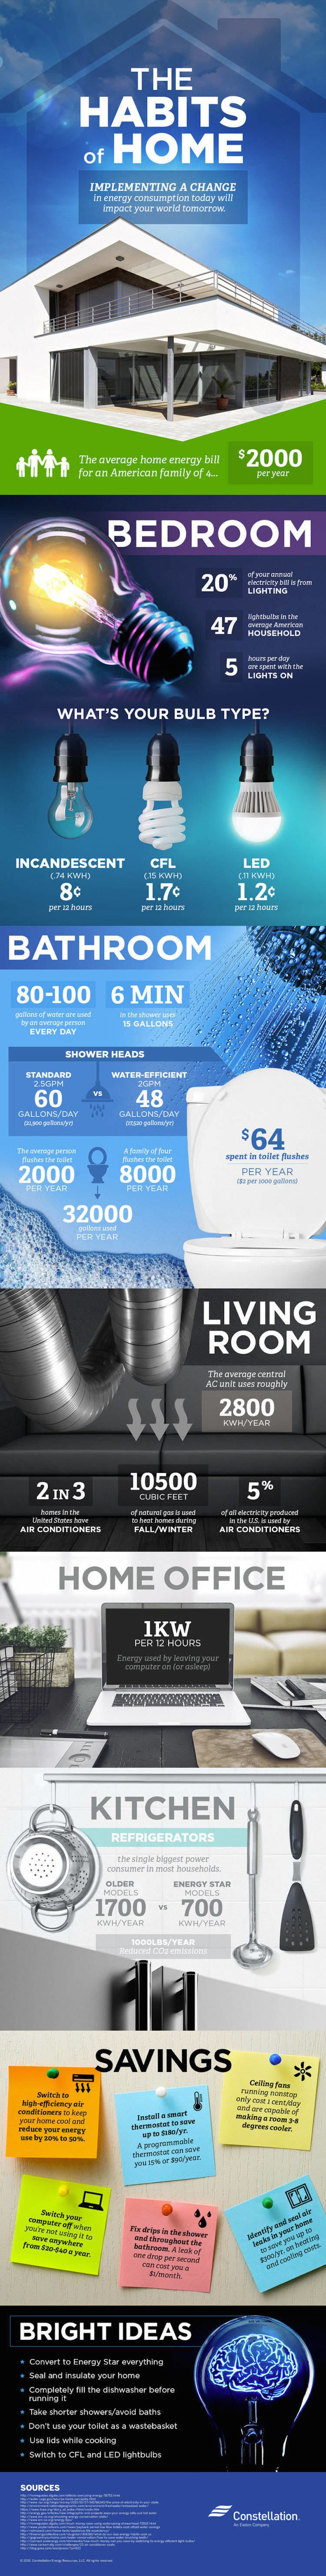 infographic, Constellation, Constellation energy, energy savings, energy bill, reader submitted content, energy efficiency